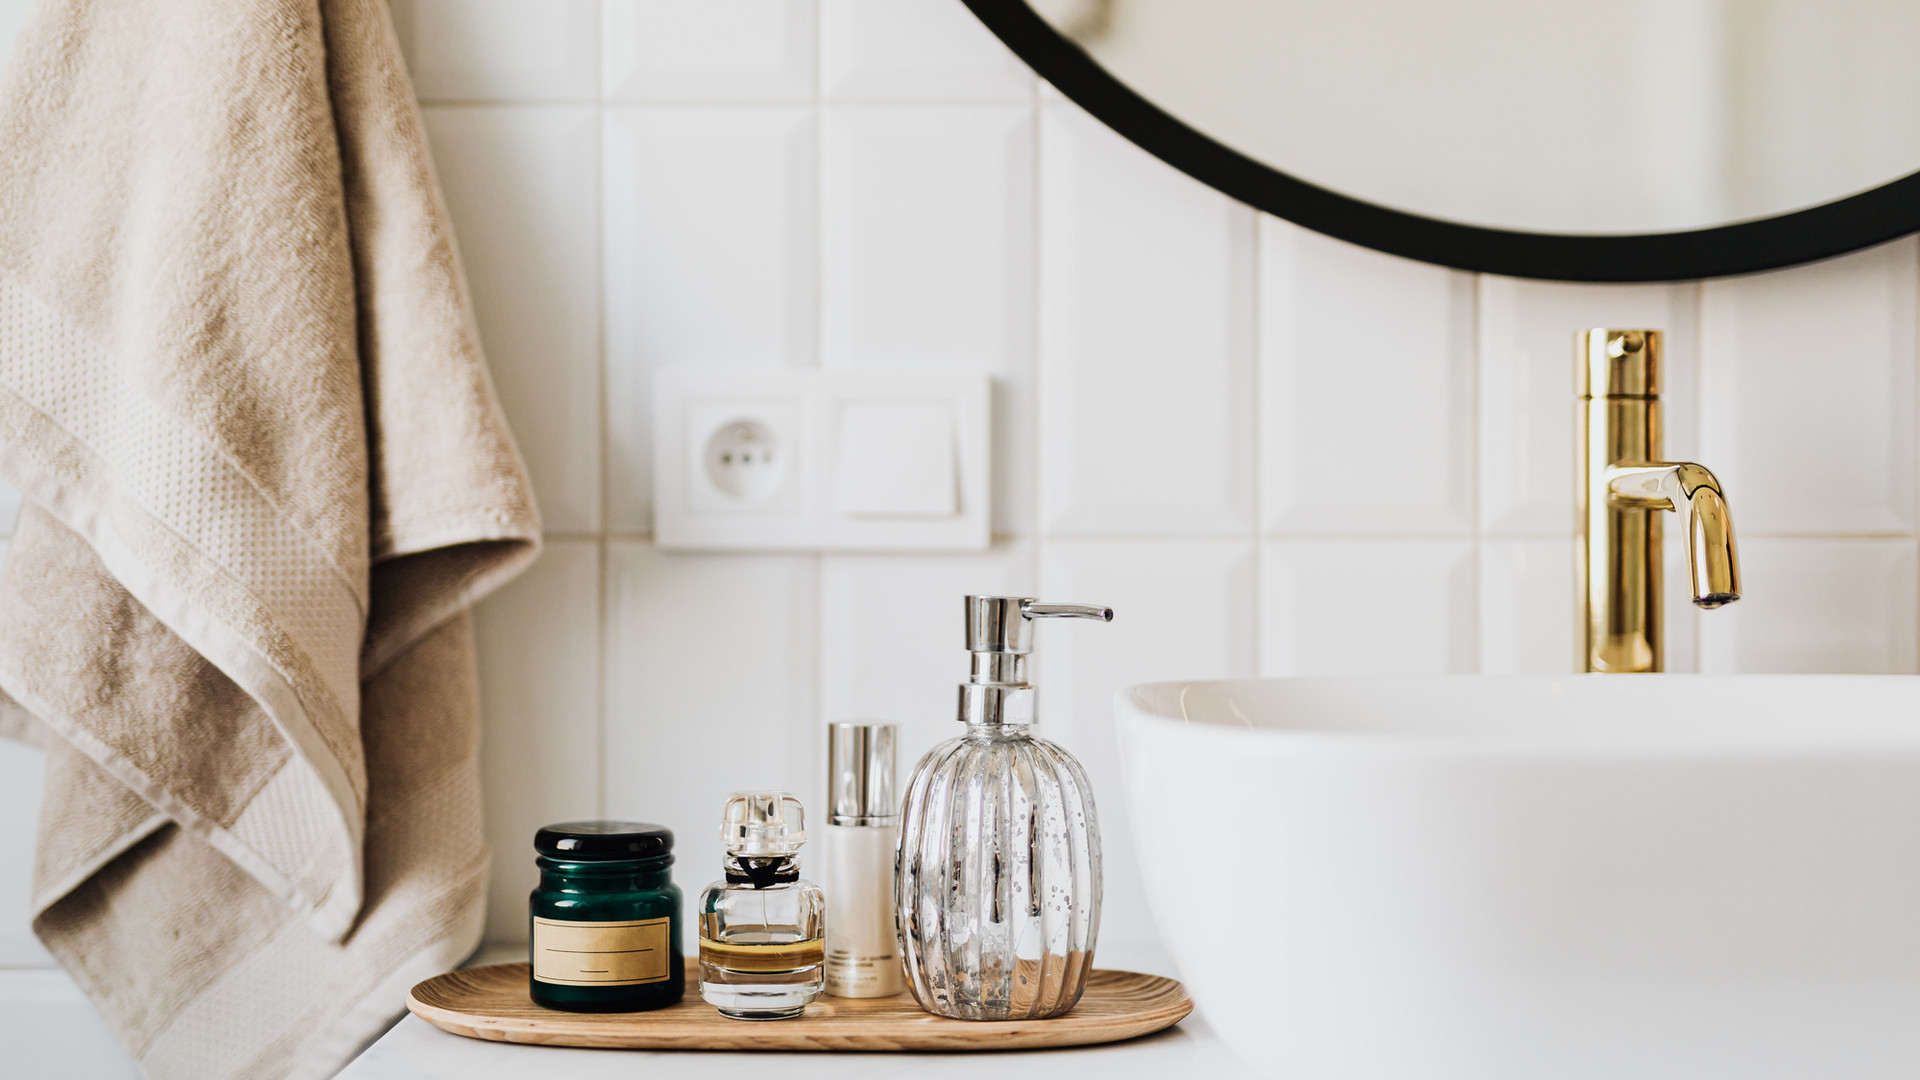 Serene Finishes & Fixtures